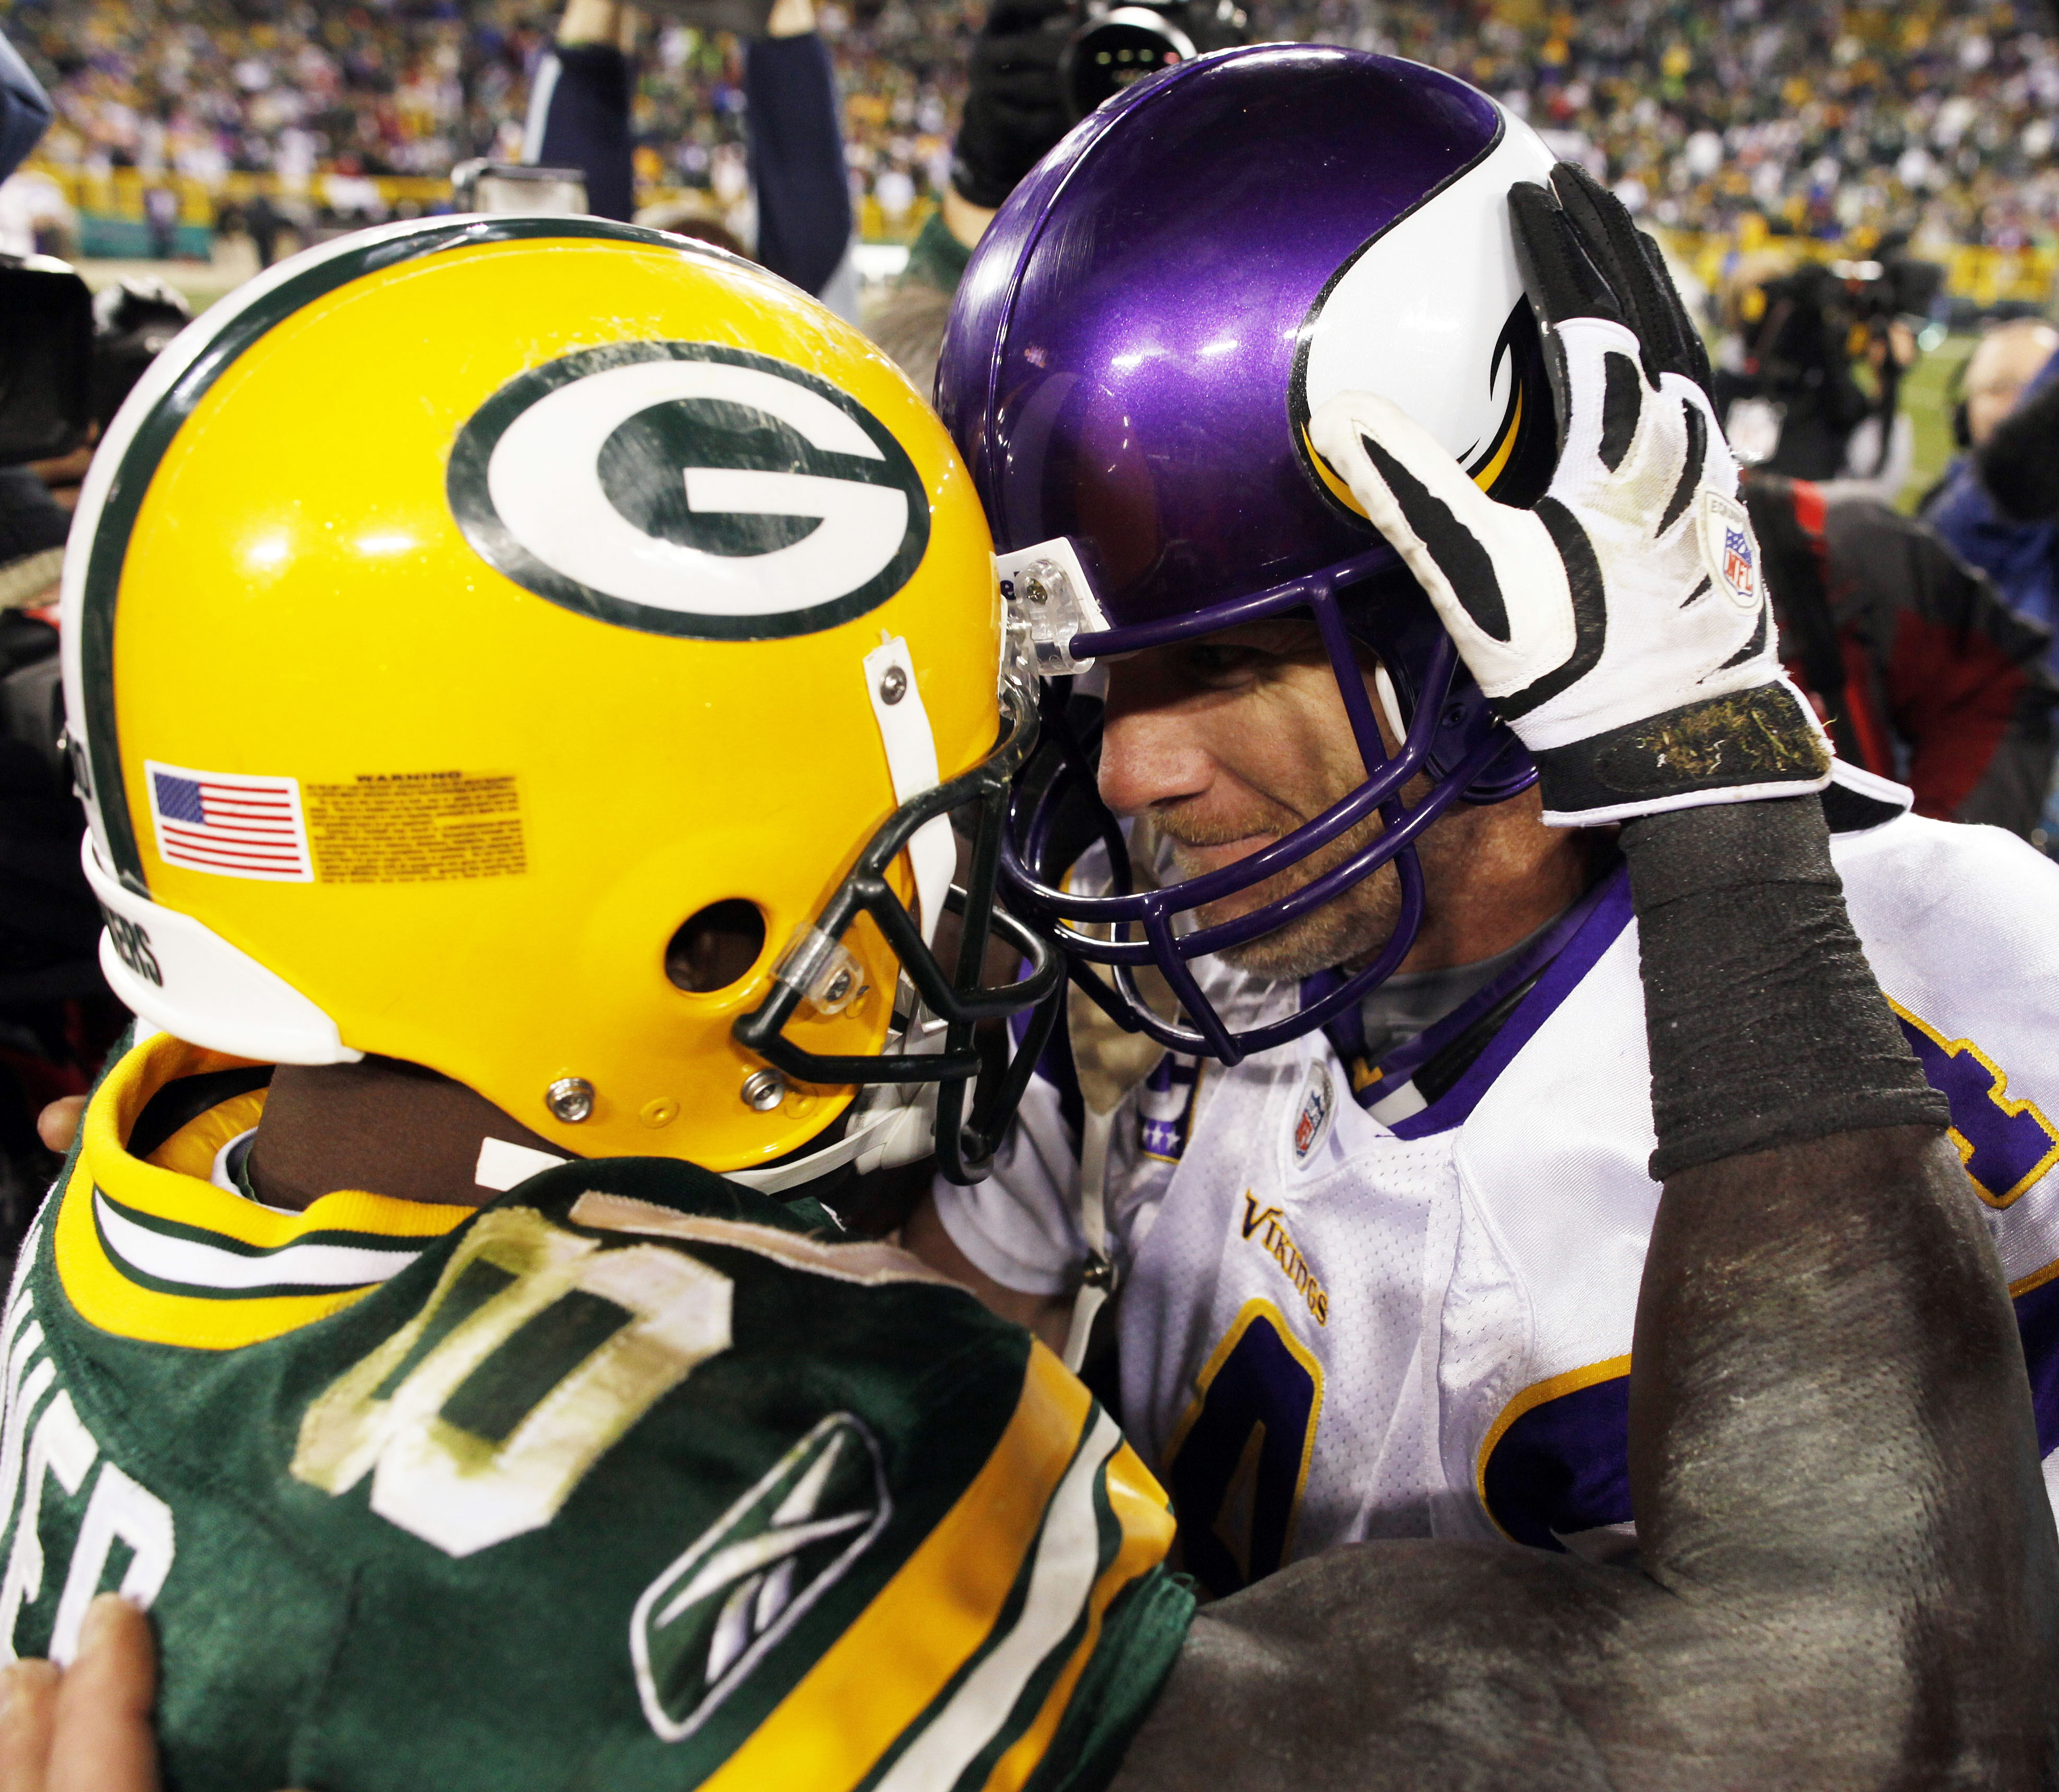 FILE - In this Nov. 1, 2009, file photo, Minnesota Vikings quarterback Brett Favre, right, and Green Bay Packers' Donald Driver put their helmets together and embrace after the Vikings defeated the Packers 38-26 in an NFL football game in Green Bay, Wis.